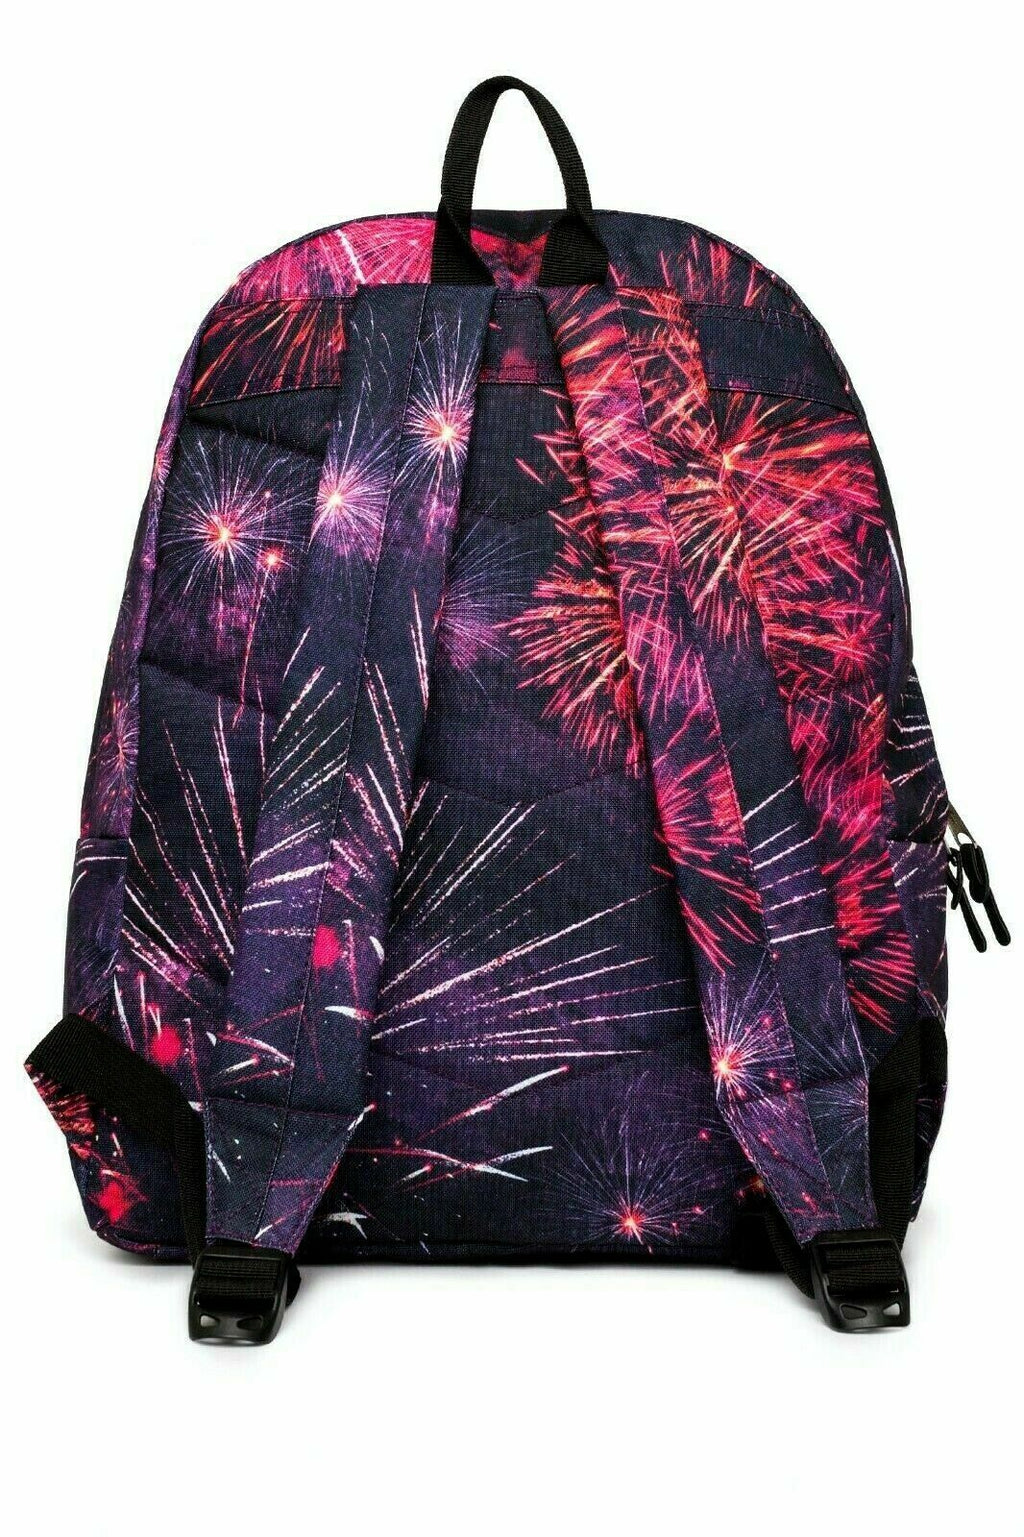 HYPE ELECTRIC FIREWORKS BACKPACK RUCKSACK BAG - MULTI